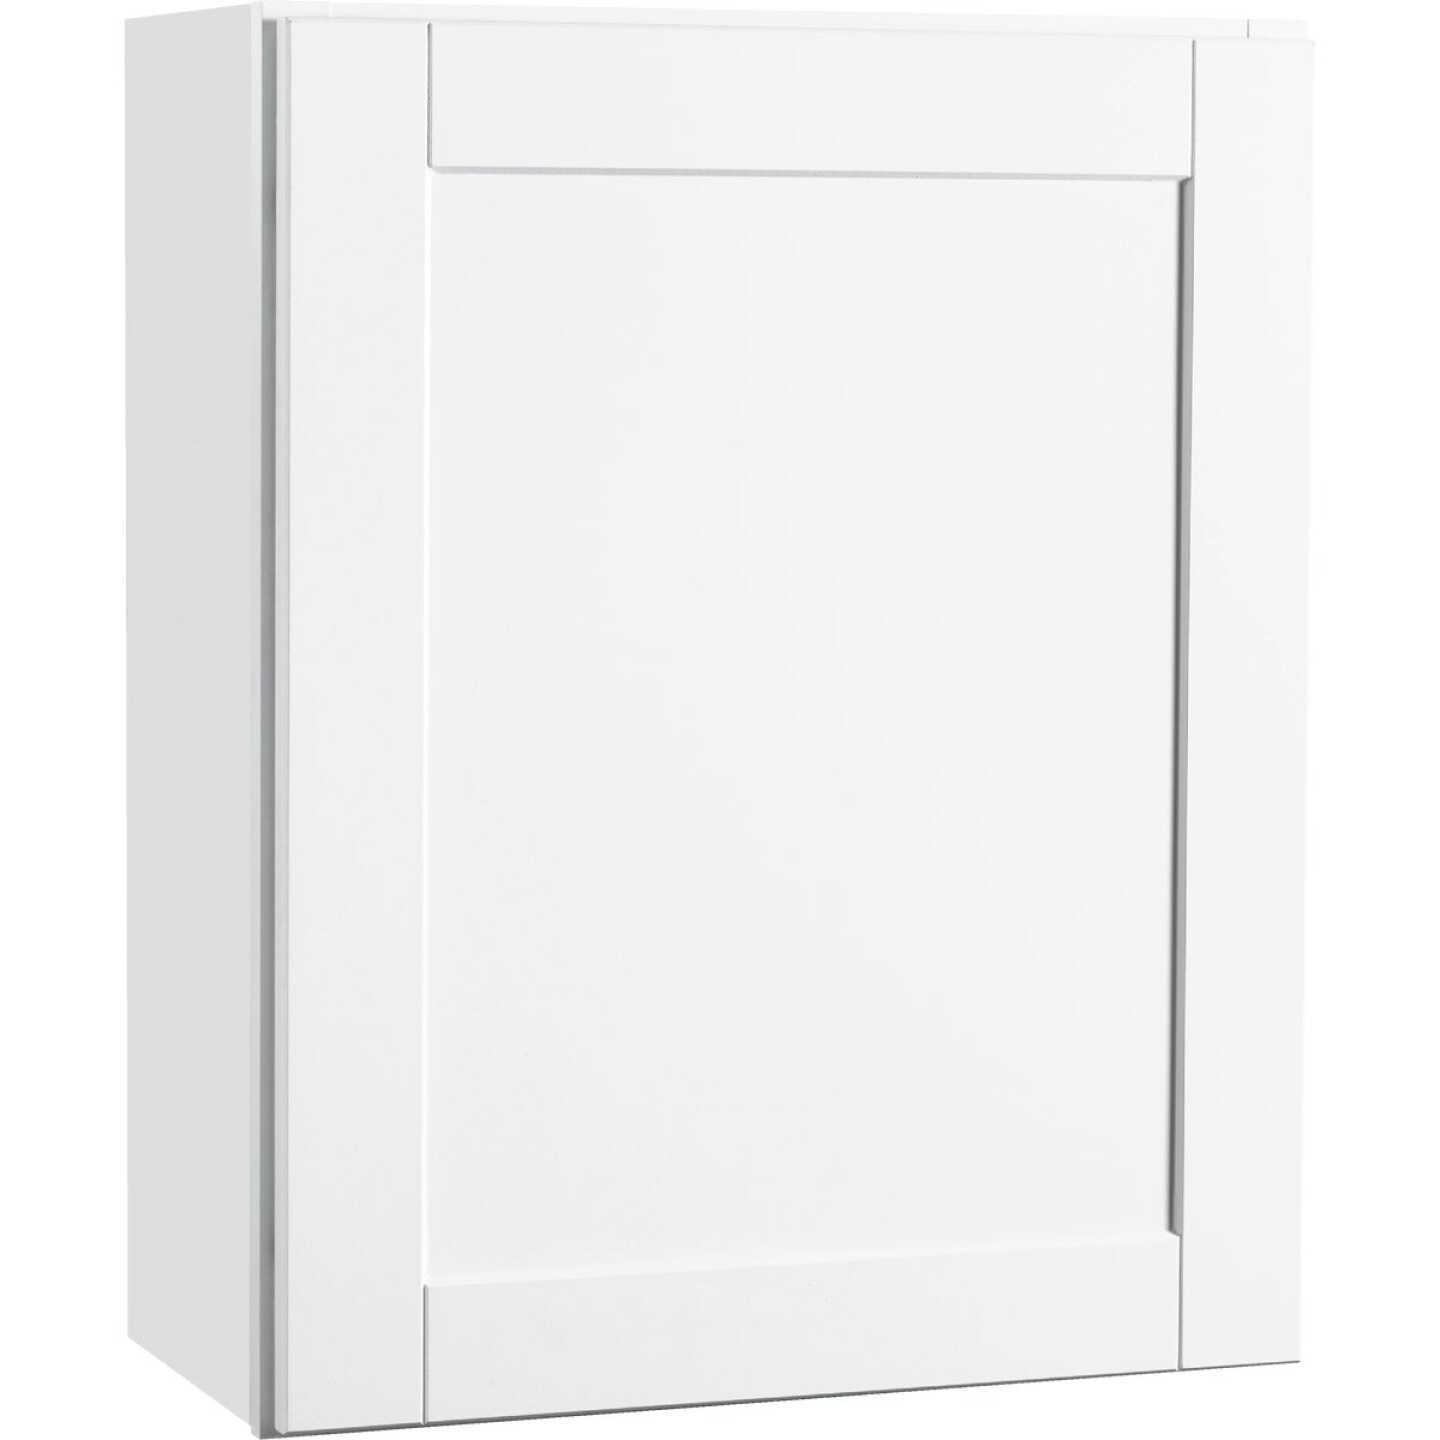 Continental Cabinets Andover Shaker 24 In. W x 30 In. H x 12 In. D White Thermofoil Wall Kitchen Cabinet Image 1